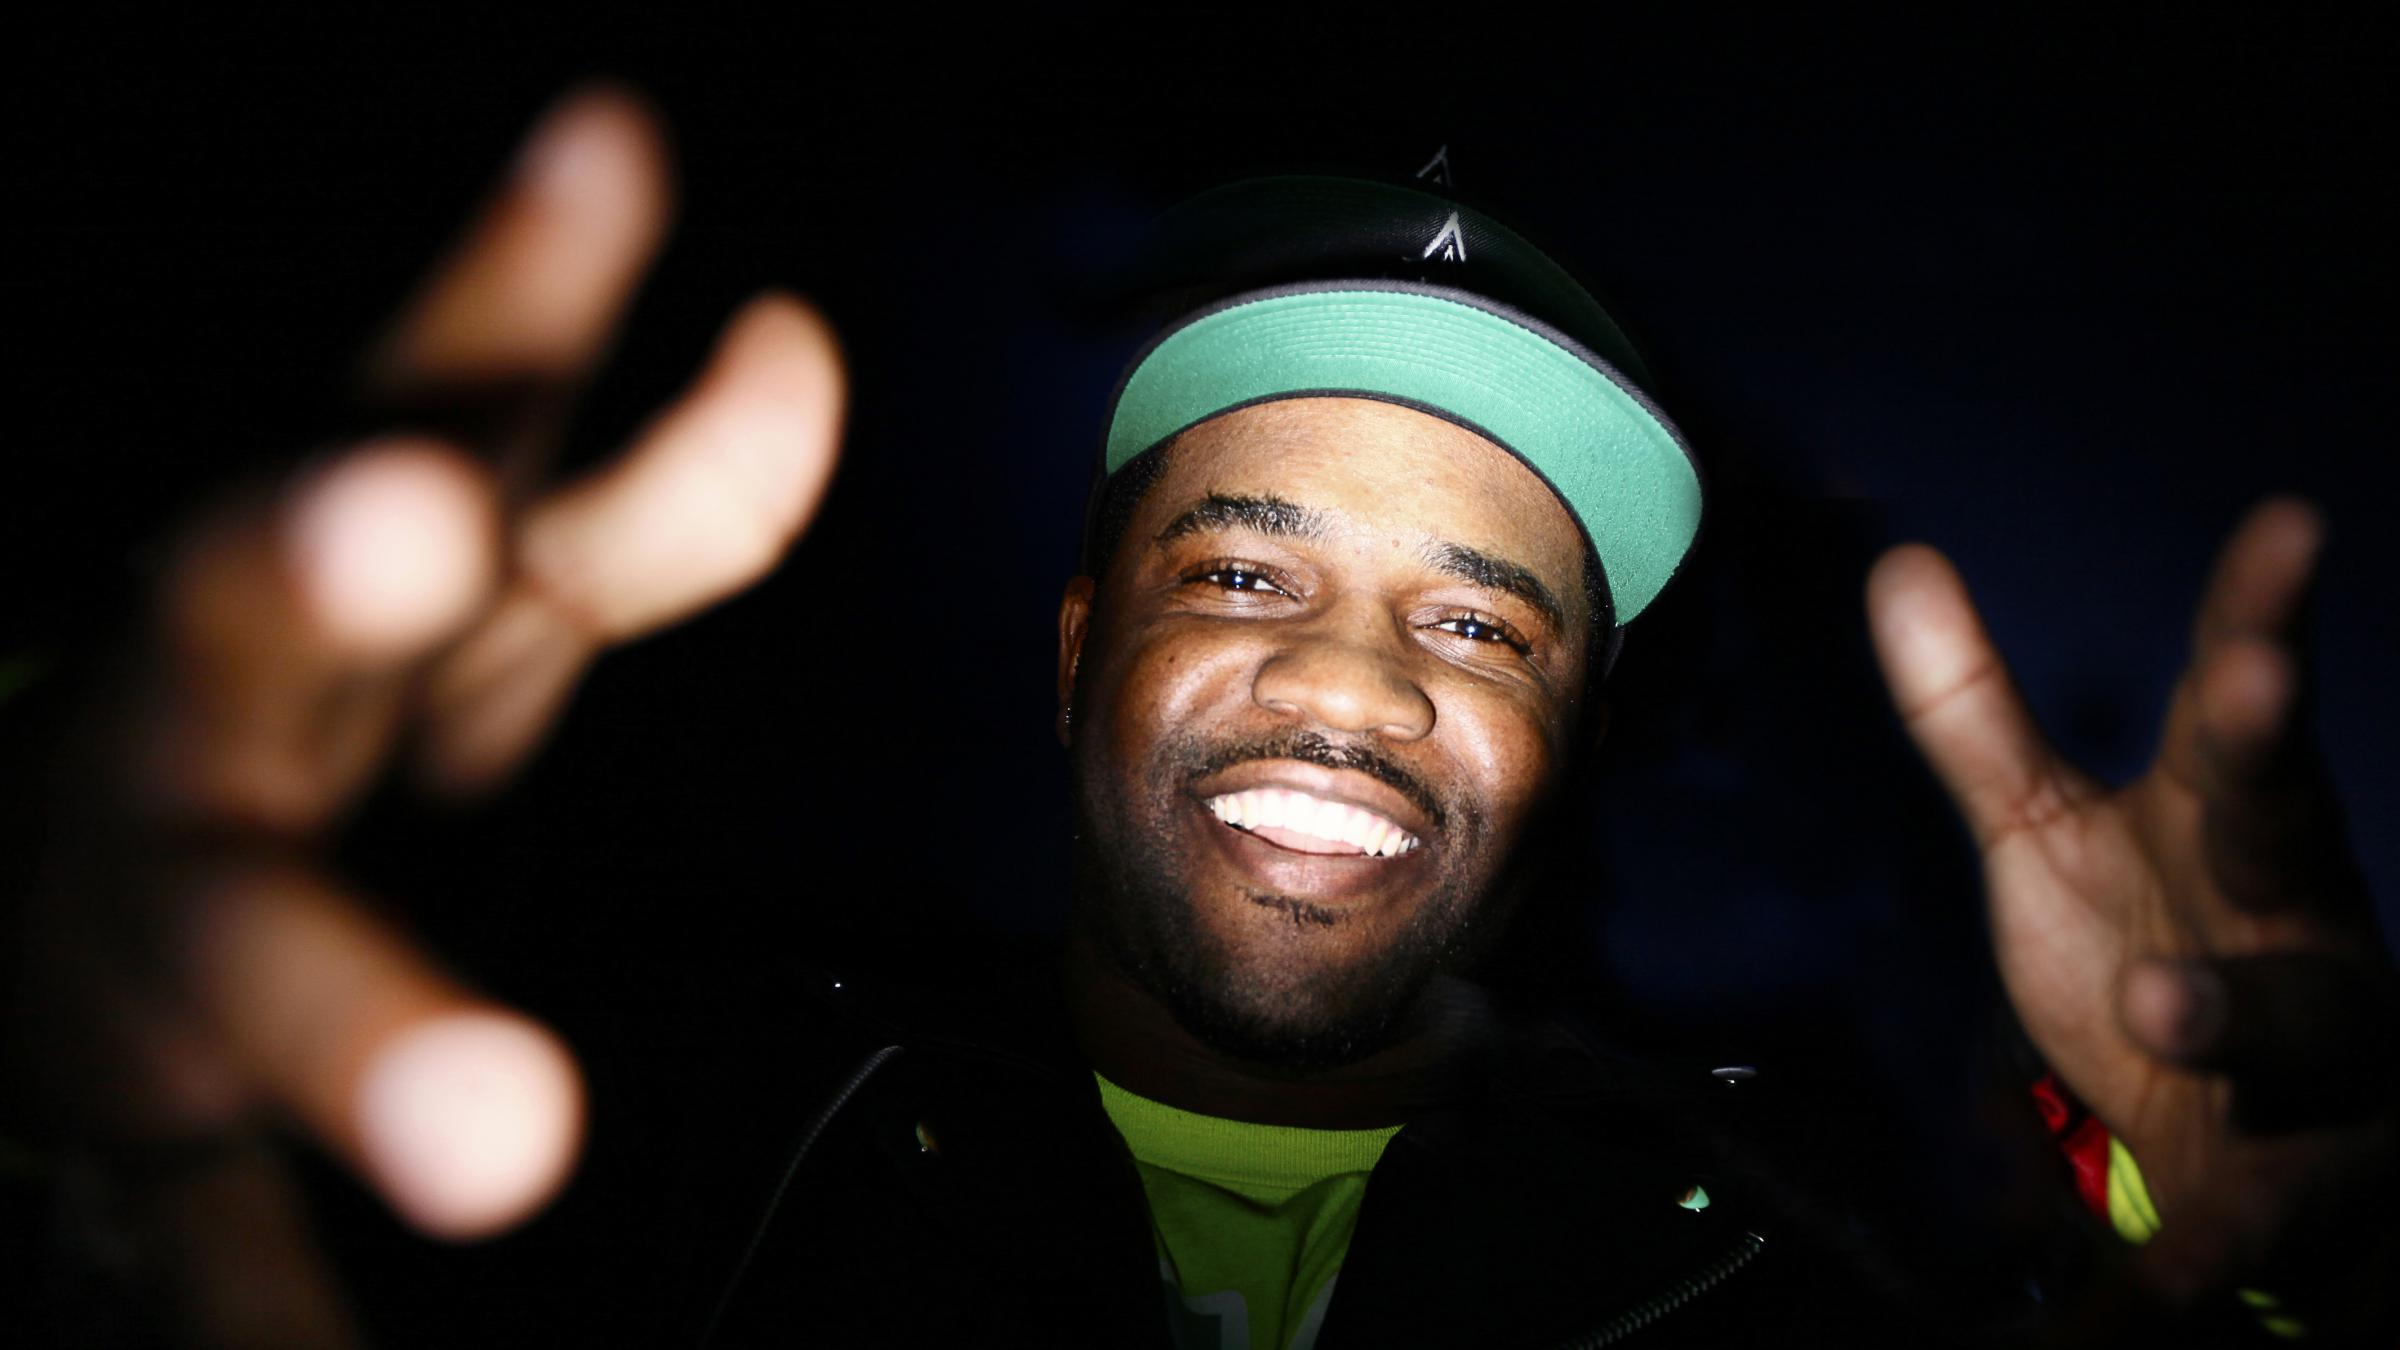 ASAP Ferg: 'I Want This Moment To Last Forever' | KOSU